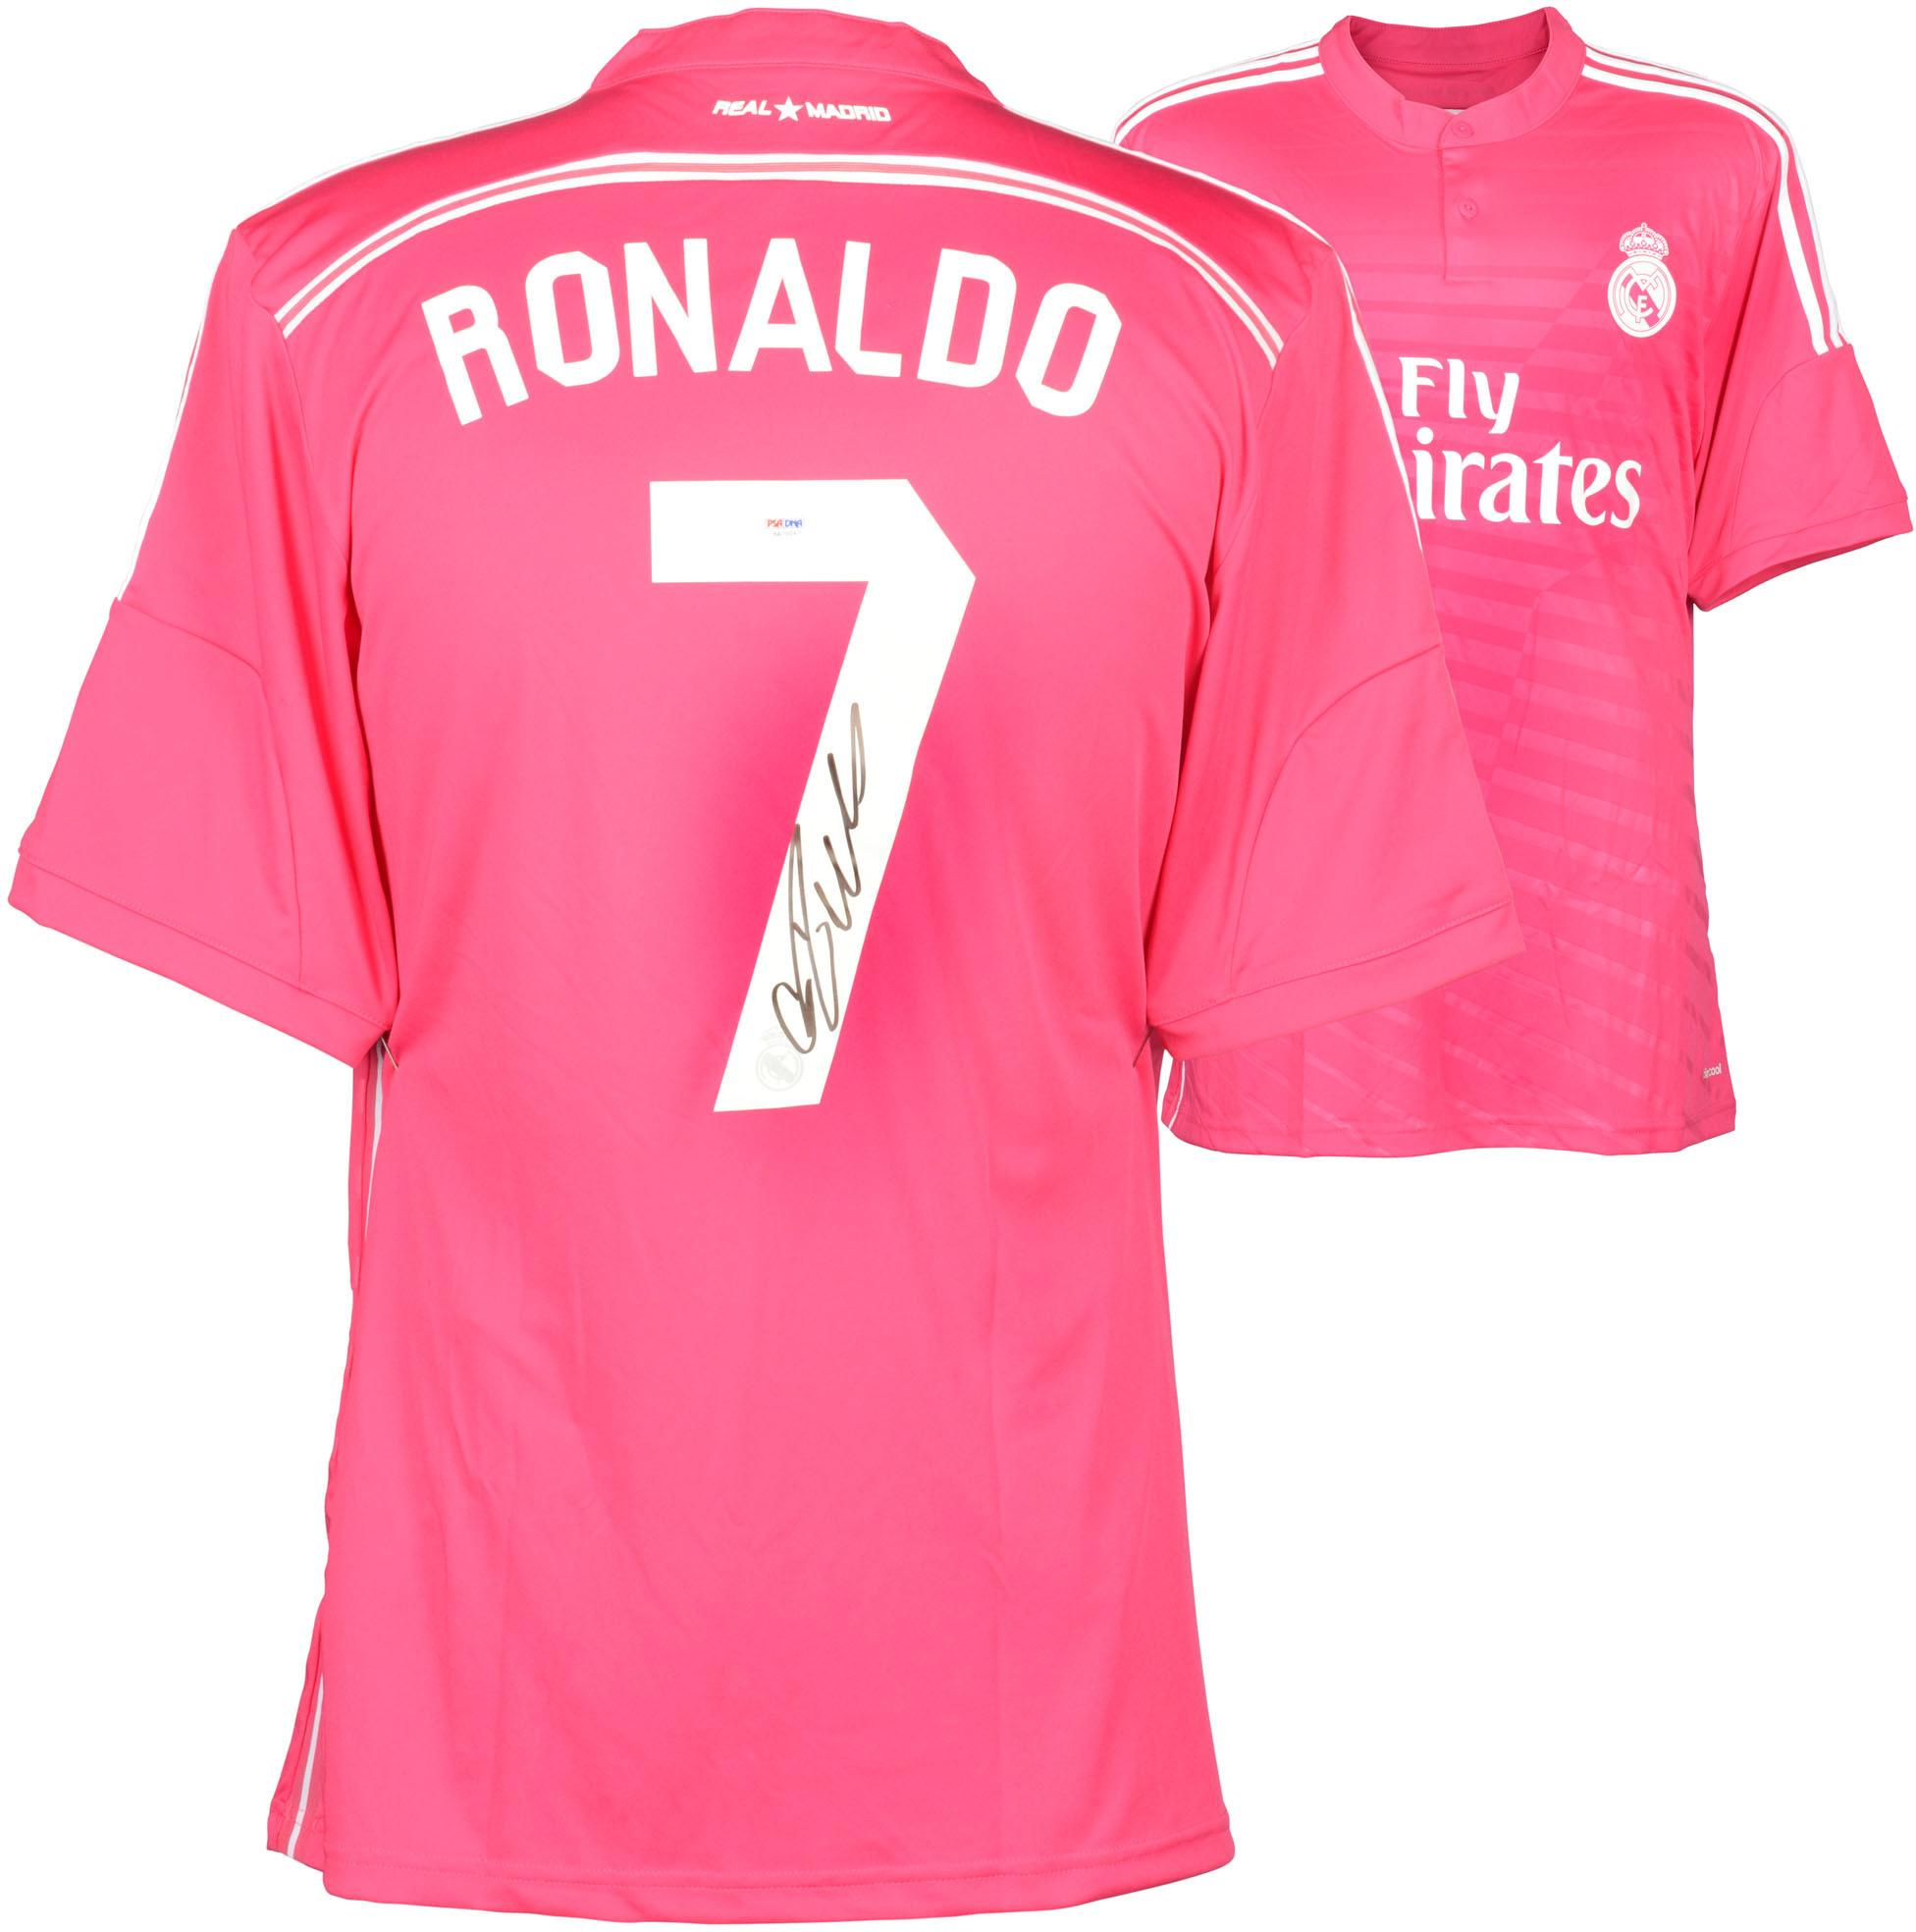 Crisitano Ronaldo Real Madrid Autographed Pink Jersey - Fanatics Authentic Certified